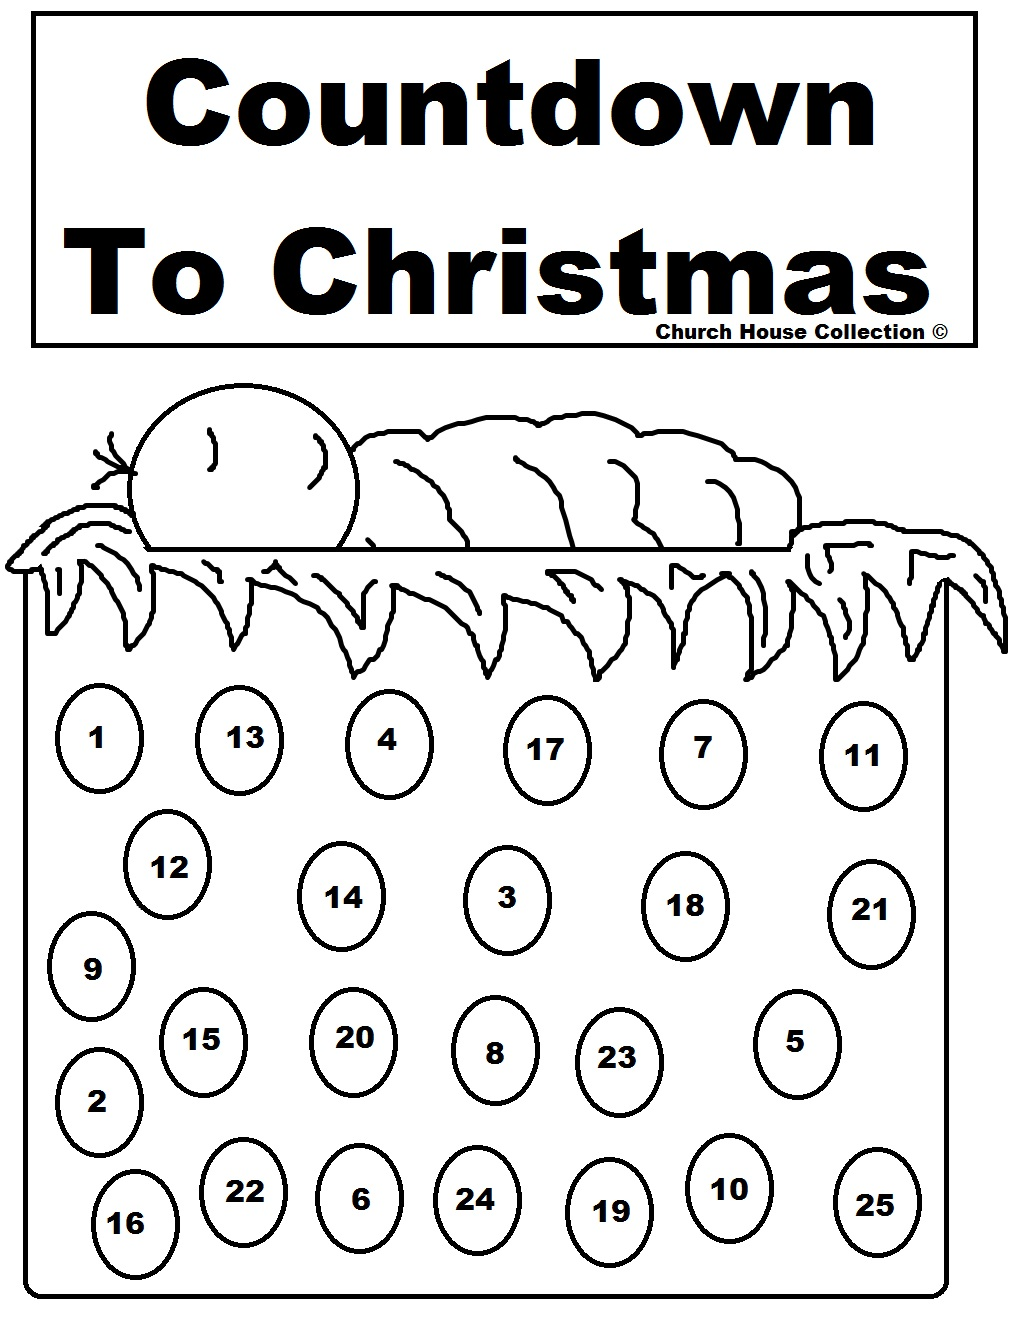 Free christmas advent calendar clipart - ClipartFest png stock